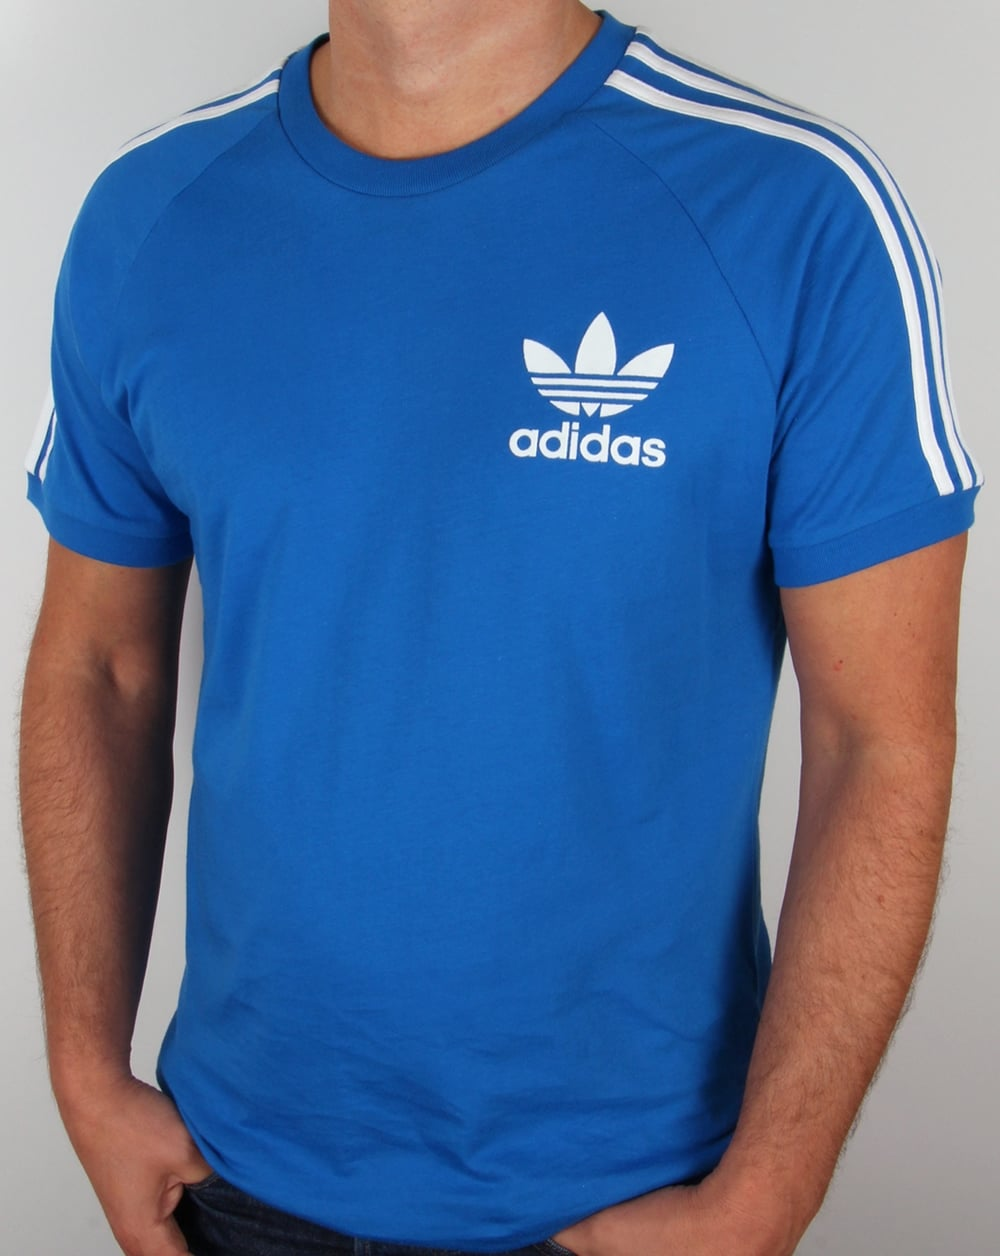 adidas originals 3 stripes t shirt bluebird blue california trefoil tee. Black Bedroom Furniture Sets. Home Design Ideas